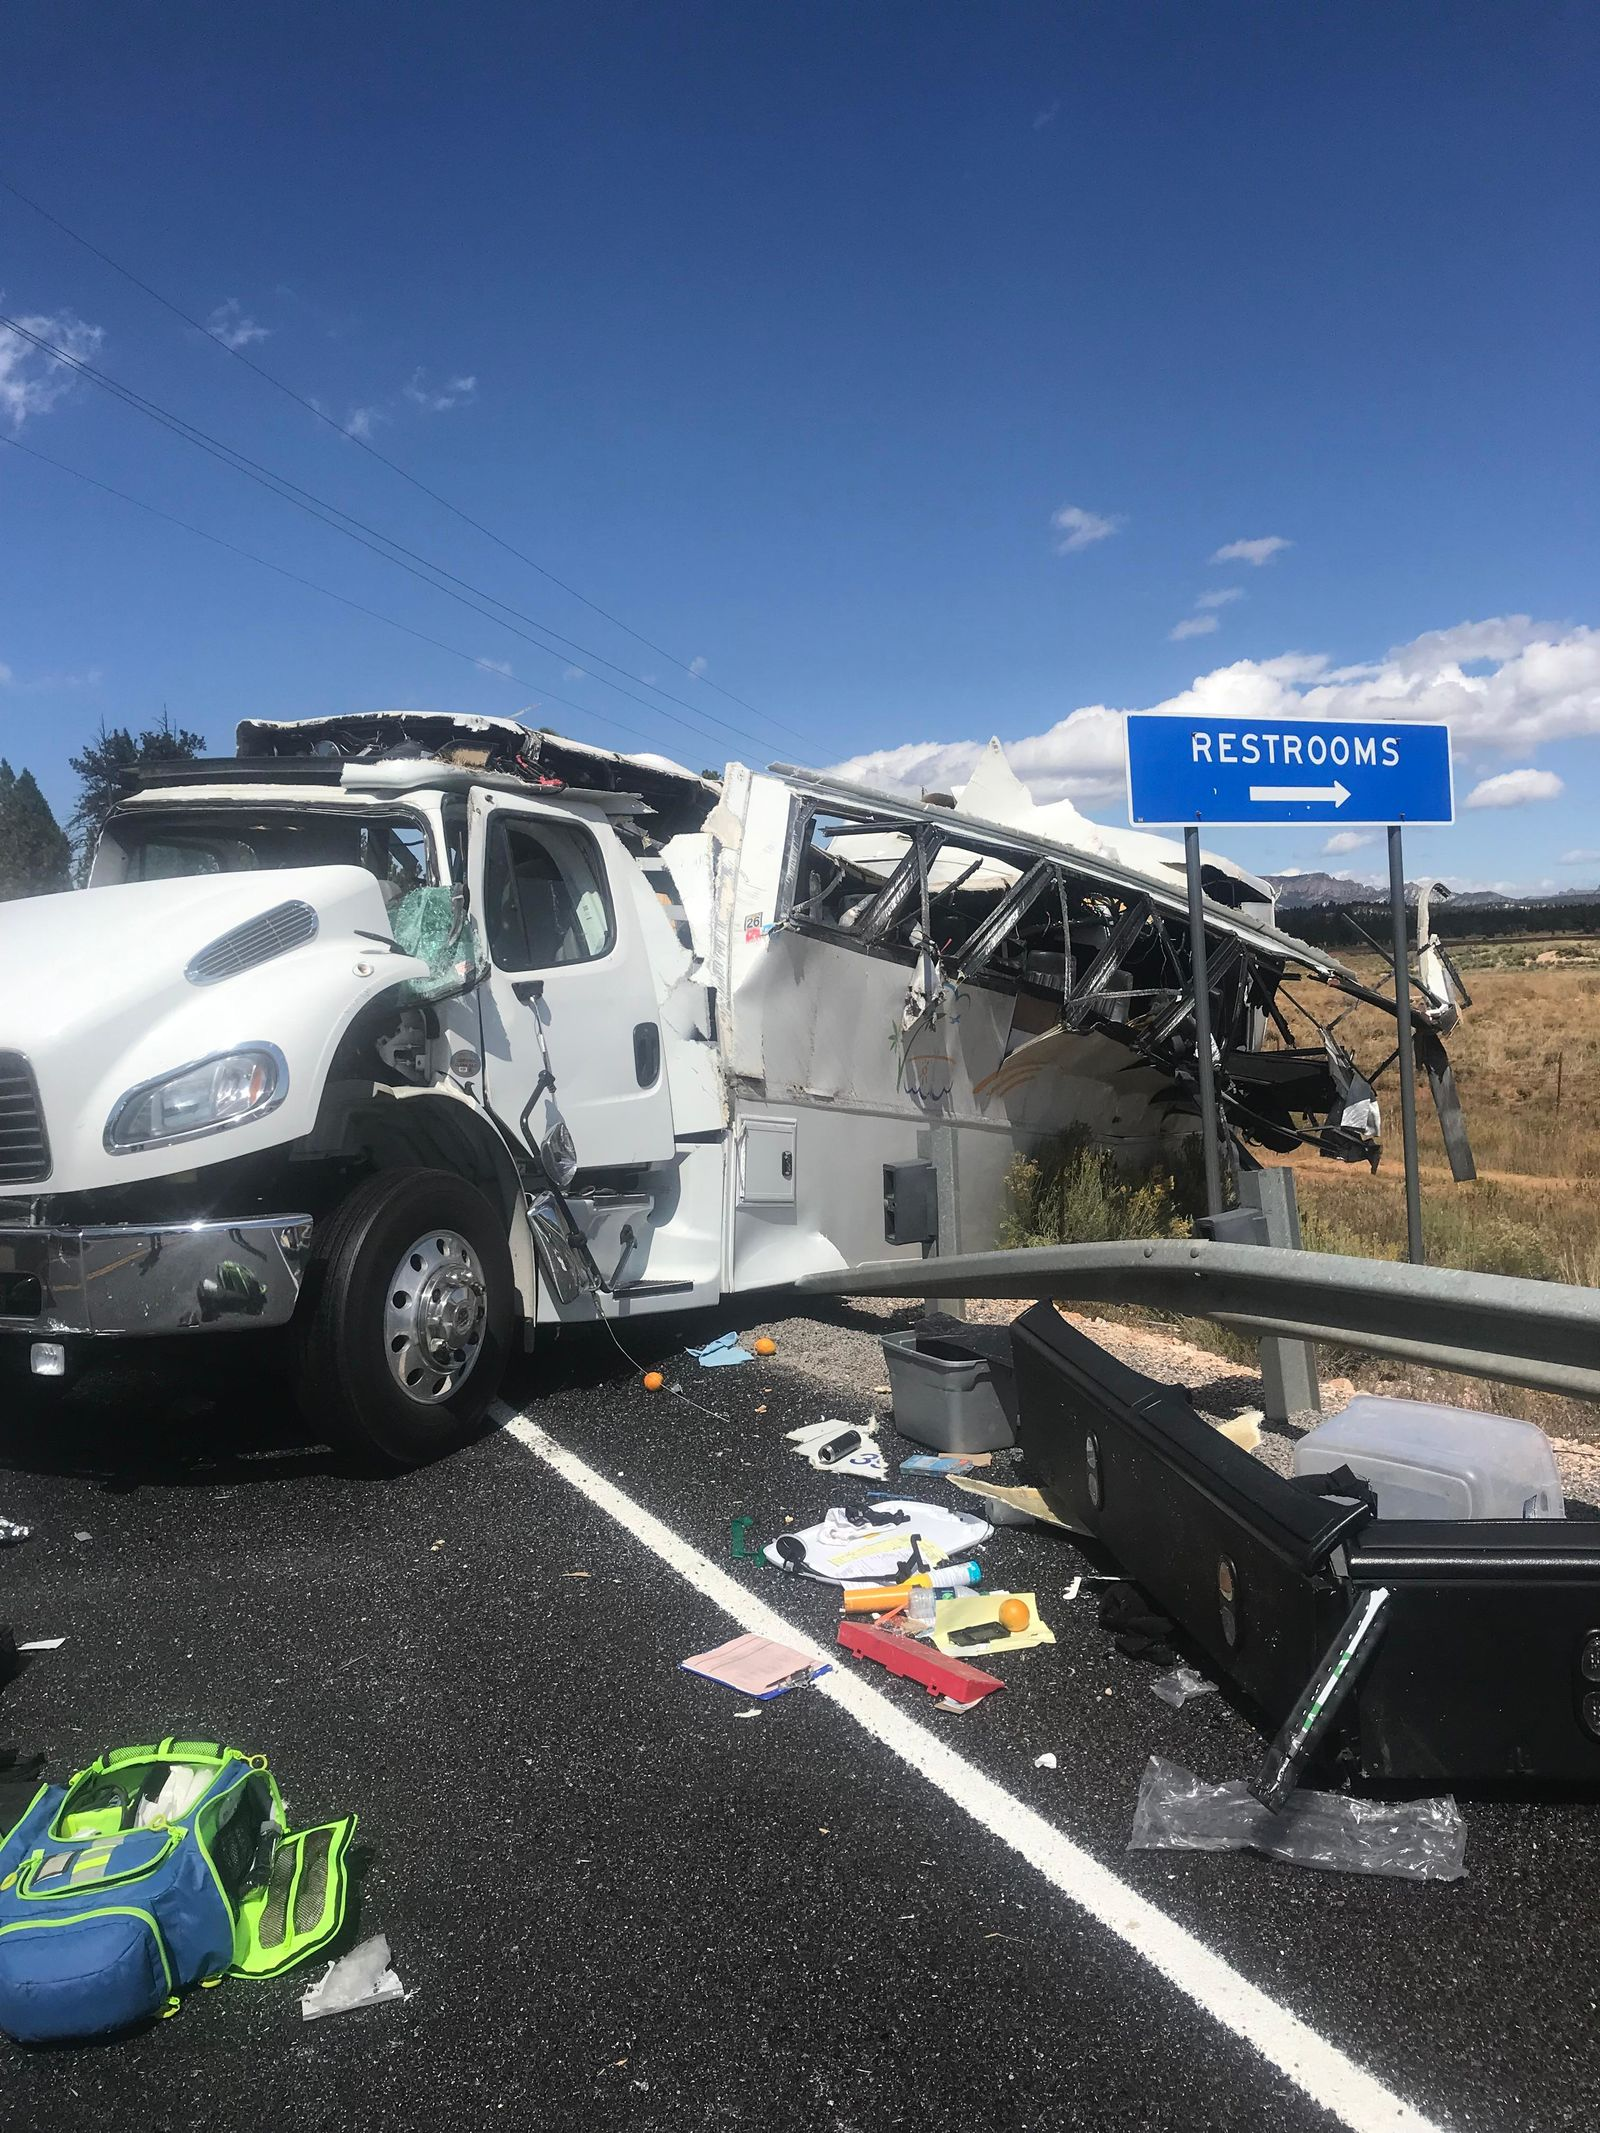 Four people are dead and 30 are injured after a tour bus crashed near Bryce Canyon Friday, according to the Garfield County Sheriff's Office. (Photo courtesy of Danny Perkins with Garfield County Sheriff's Office)